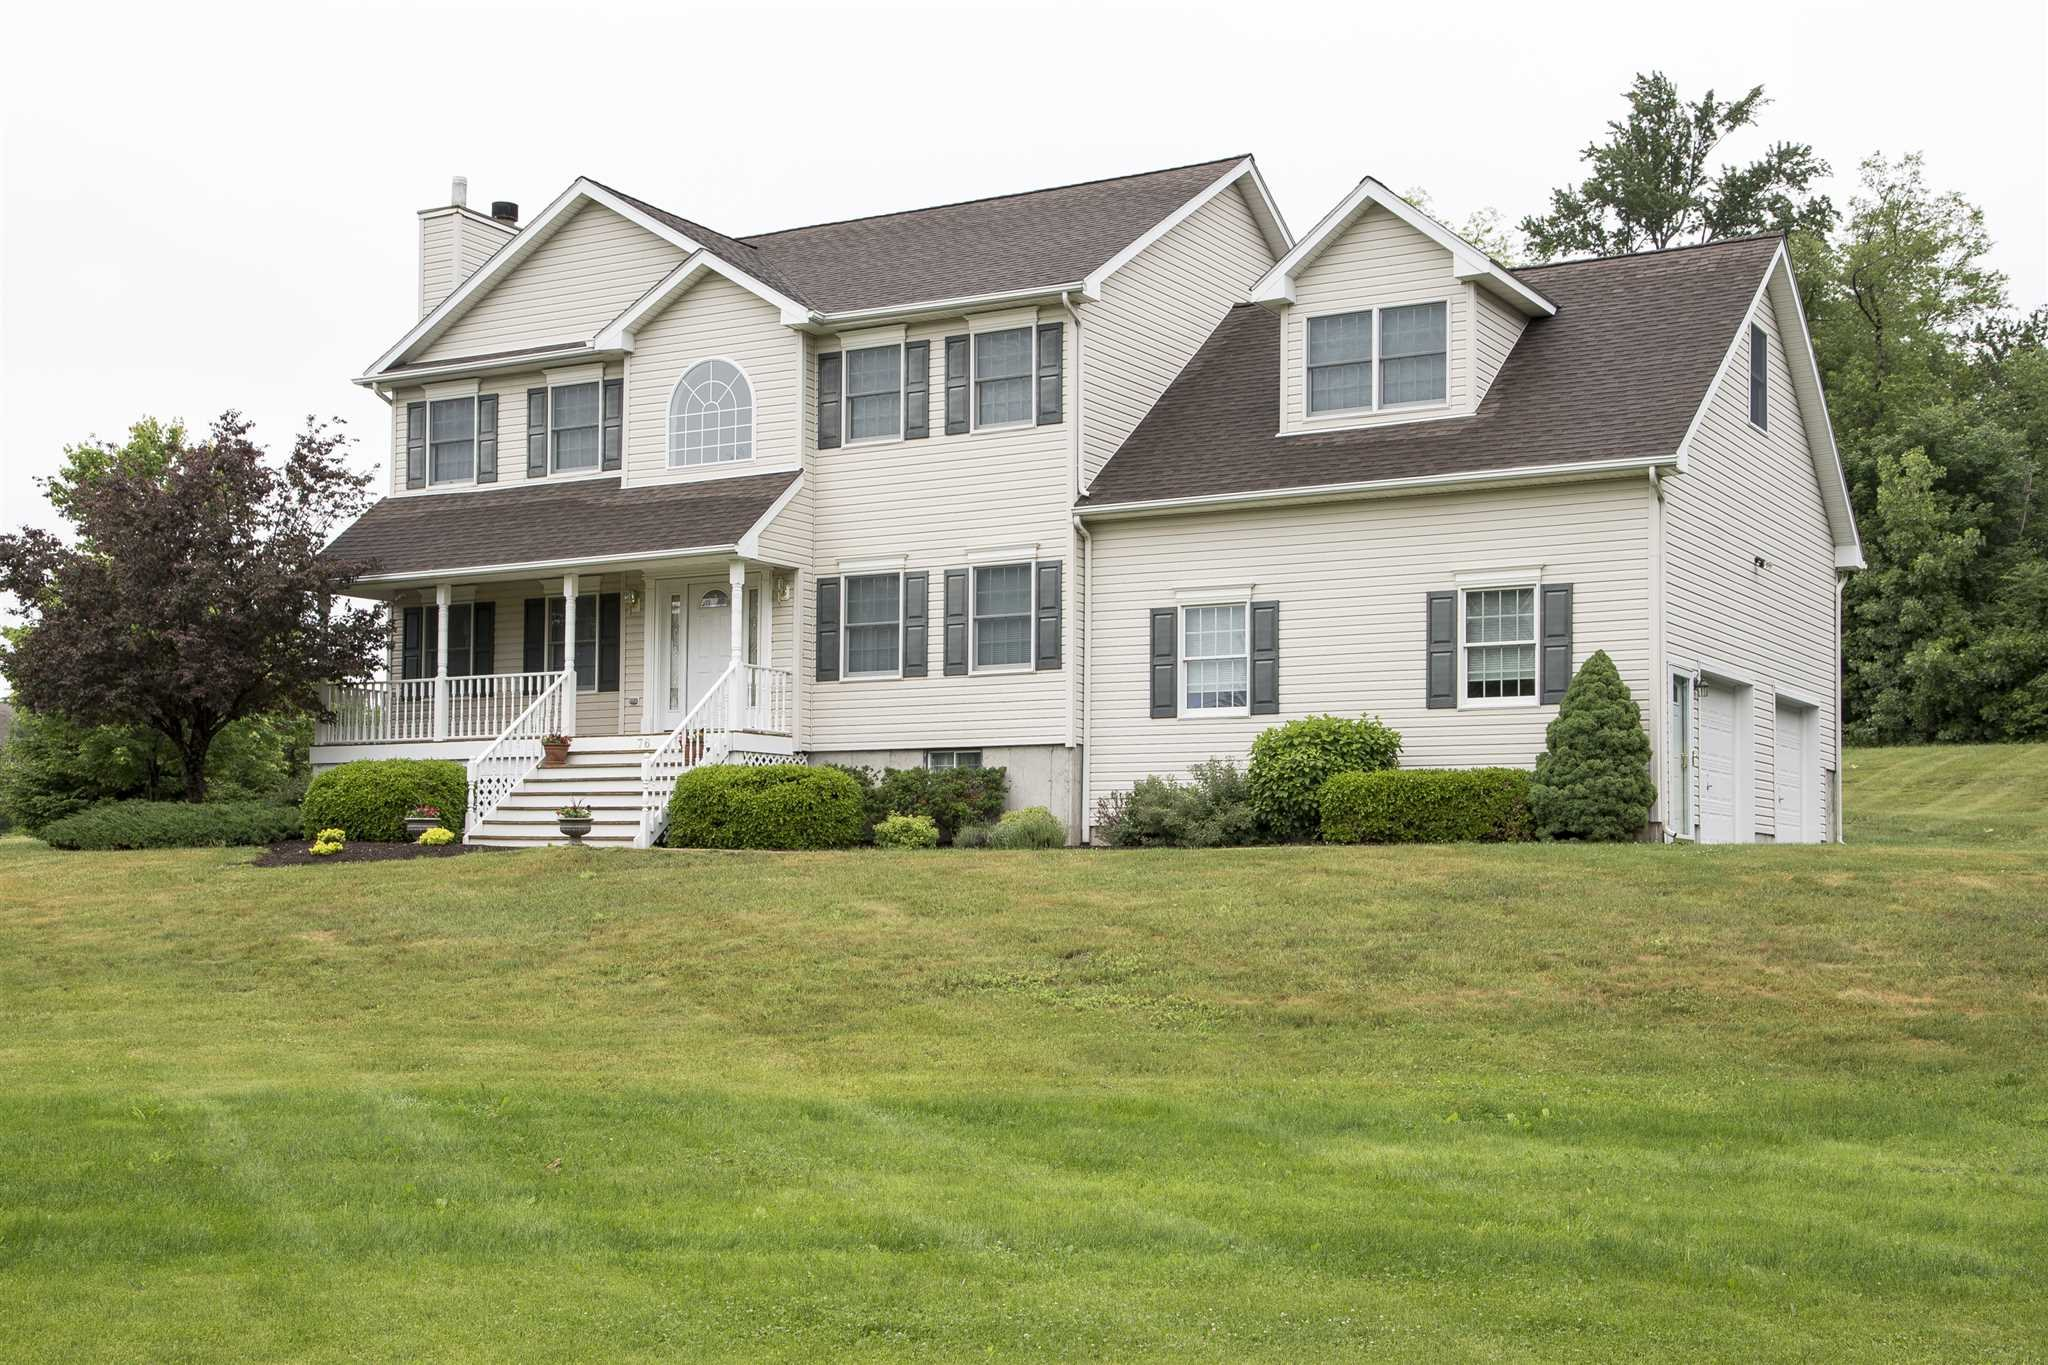 Single Family Home for Sale at KENT Road KENT Road Wappinger, New York 12569 United States